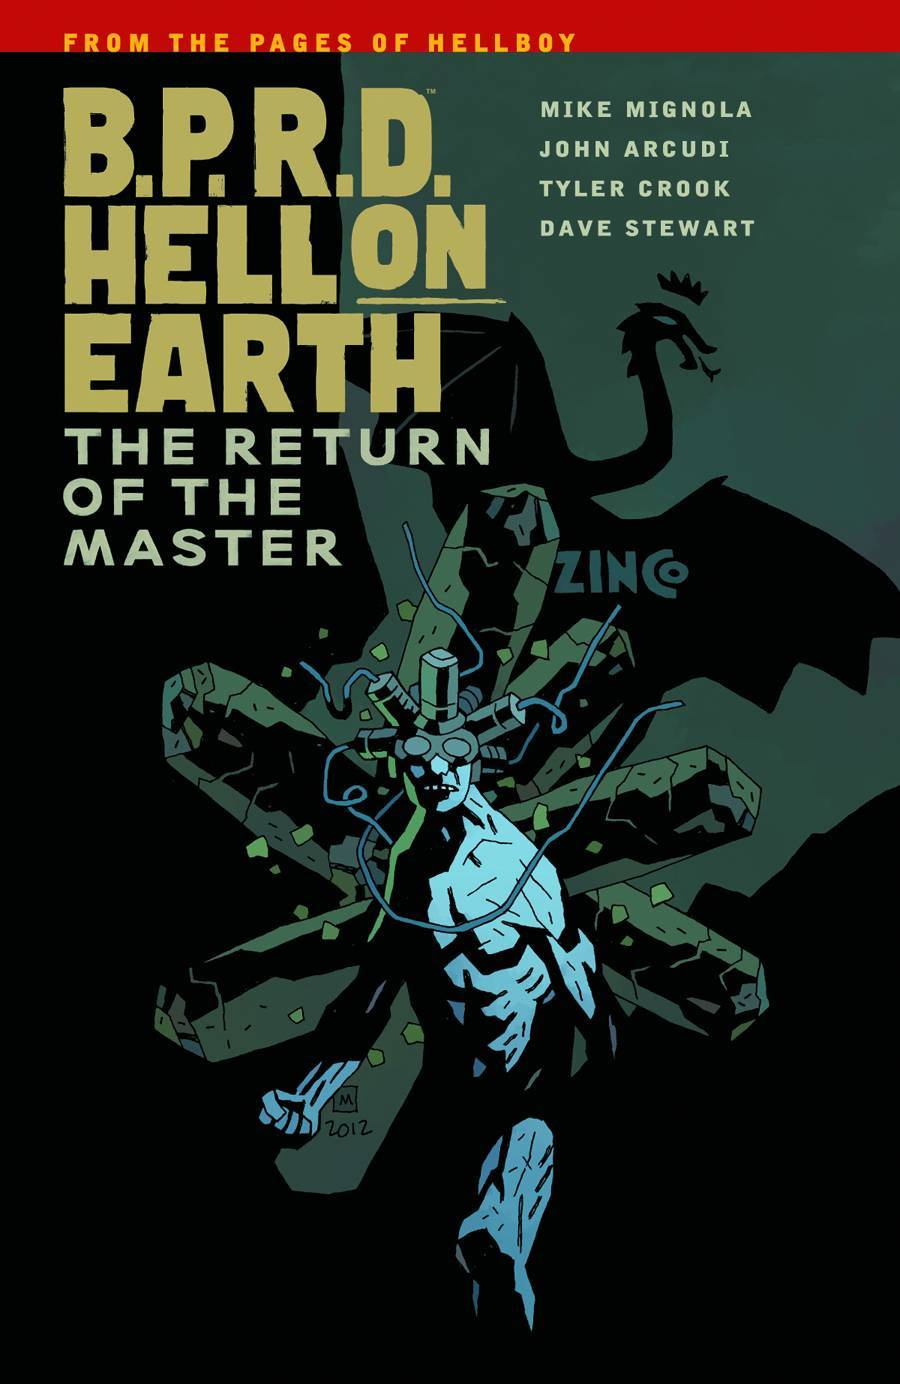 BPRD Hell On Earth Vol 06 Return of the Master